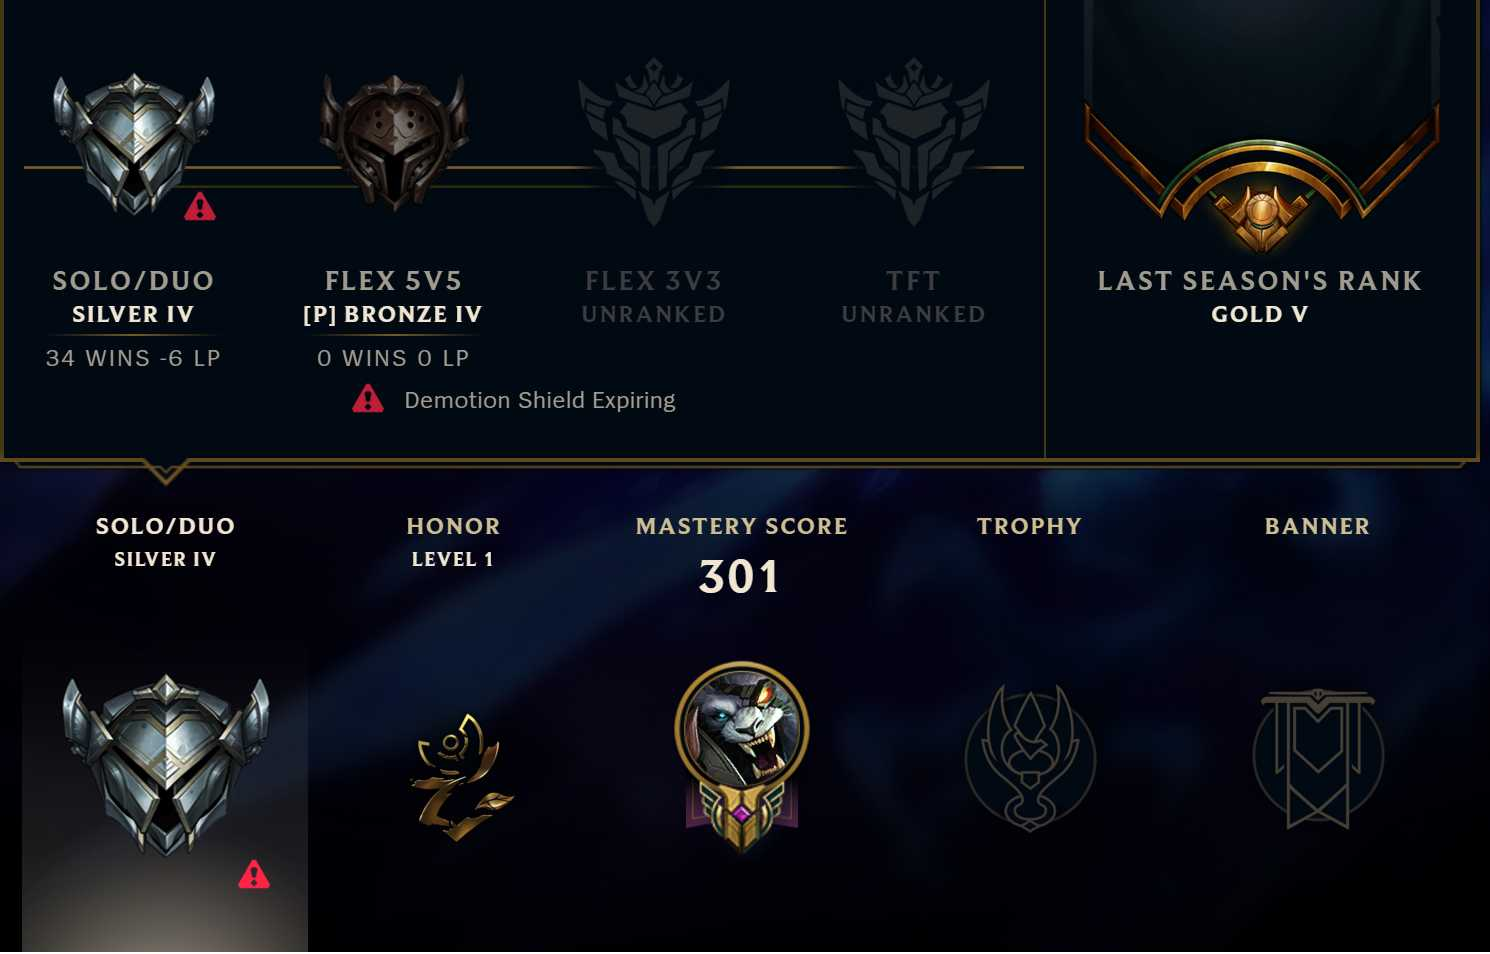 can you be demoted from gold?, can you get demoted from gold to silver?, can you get demoted from plat to gold?, demotion shield expiring, how many losses at 0 lp to get demoted?, how to get demoted in lol?, league of legends demotion shield, lol demotion shield